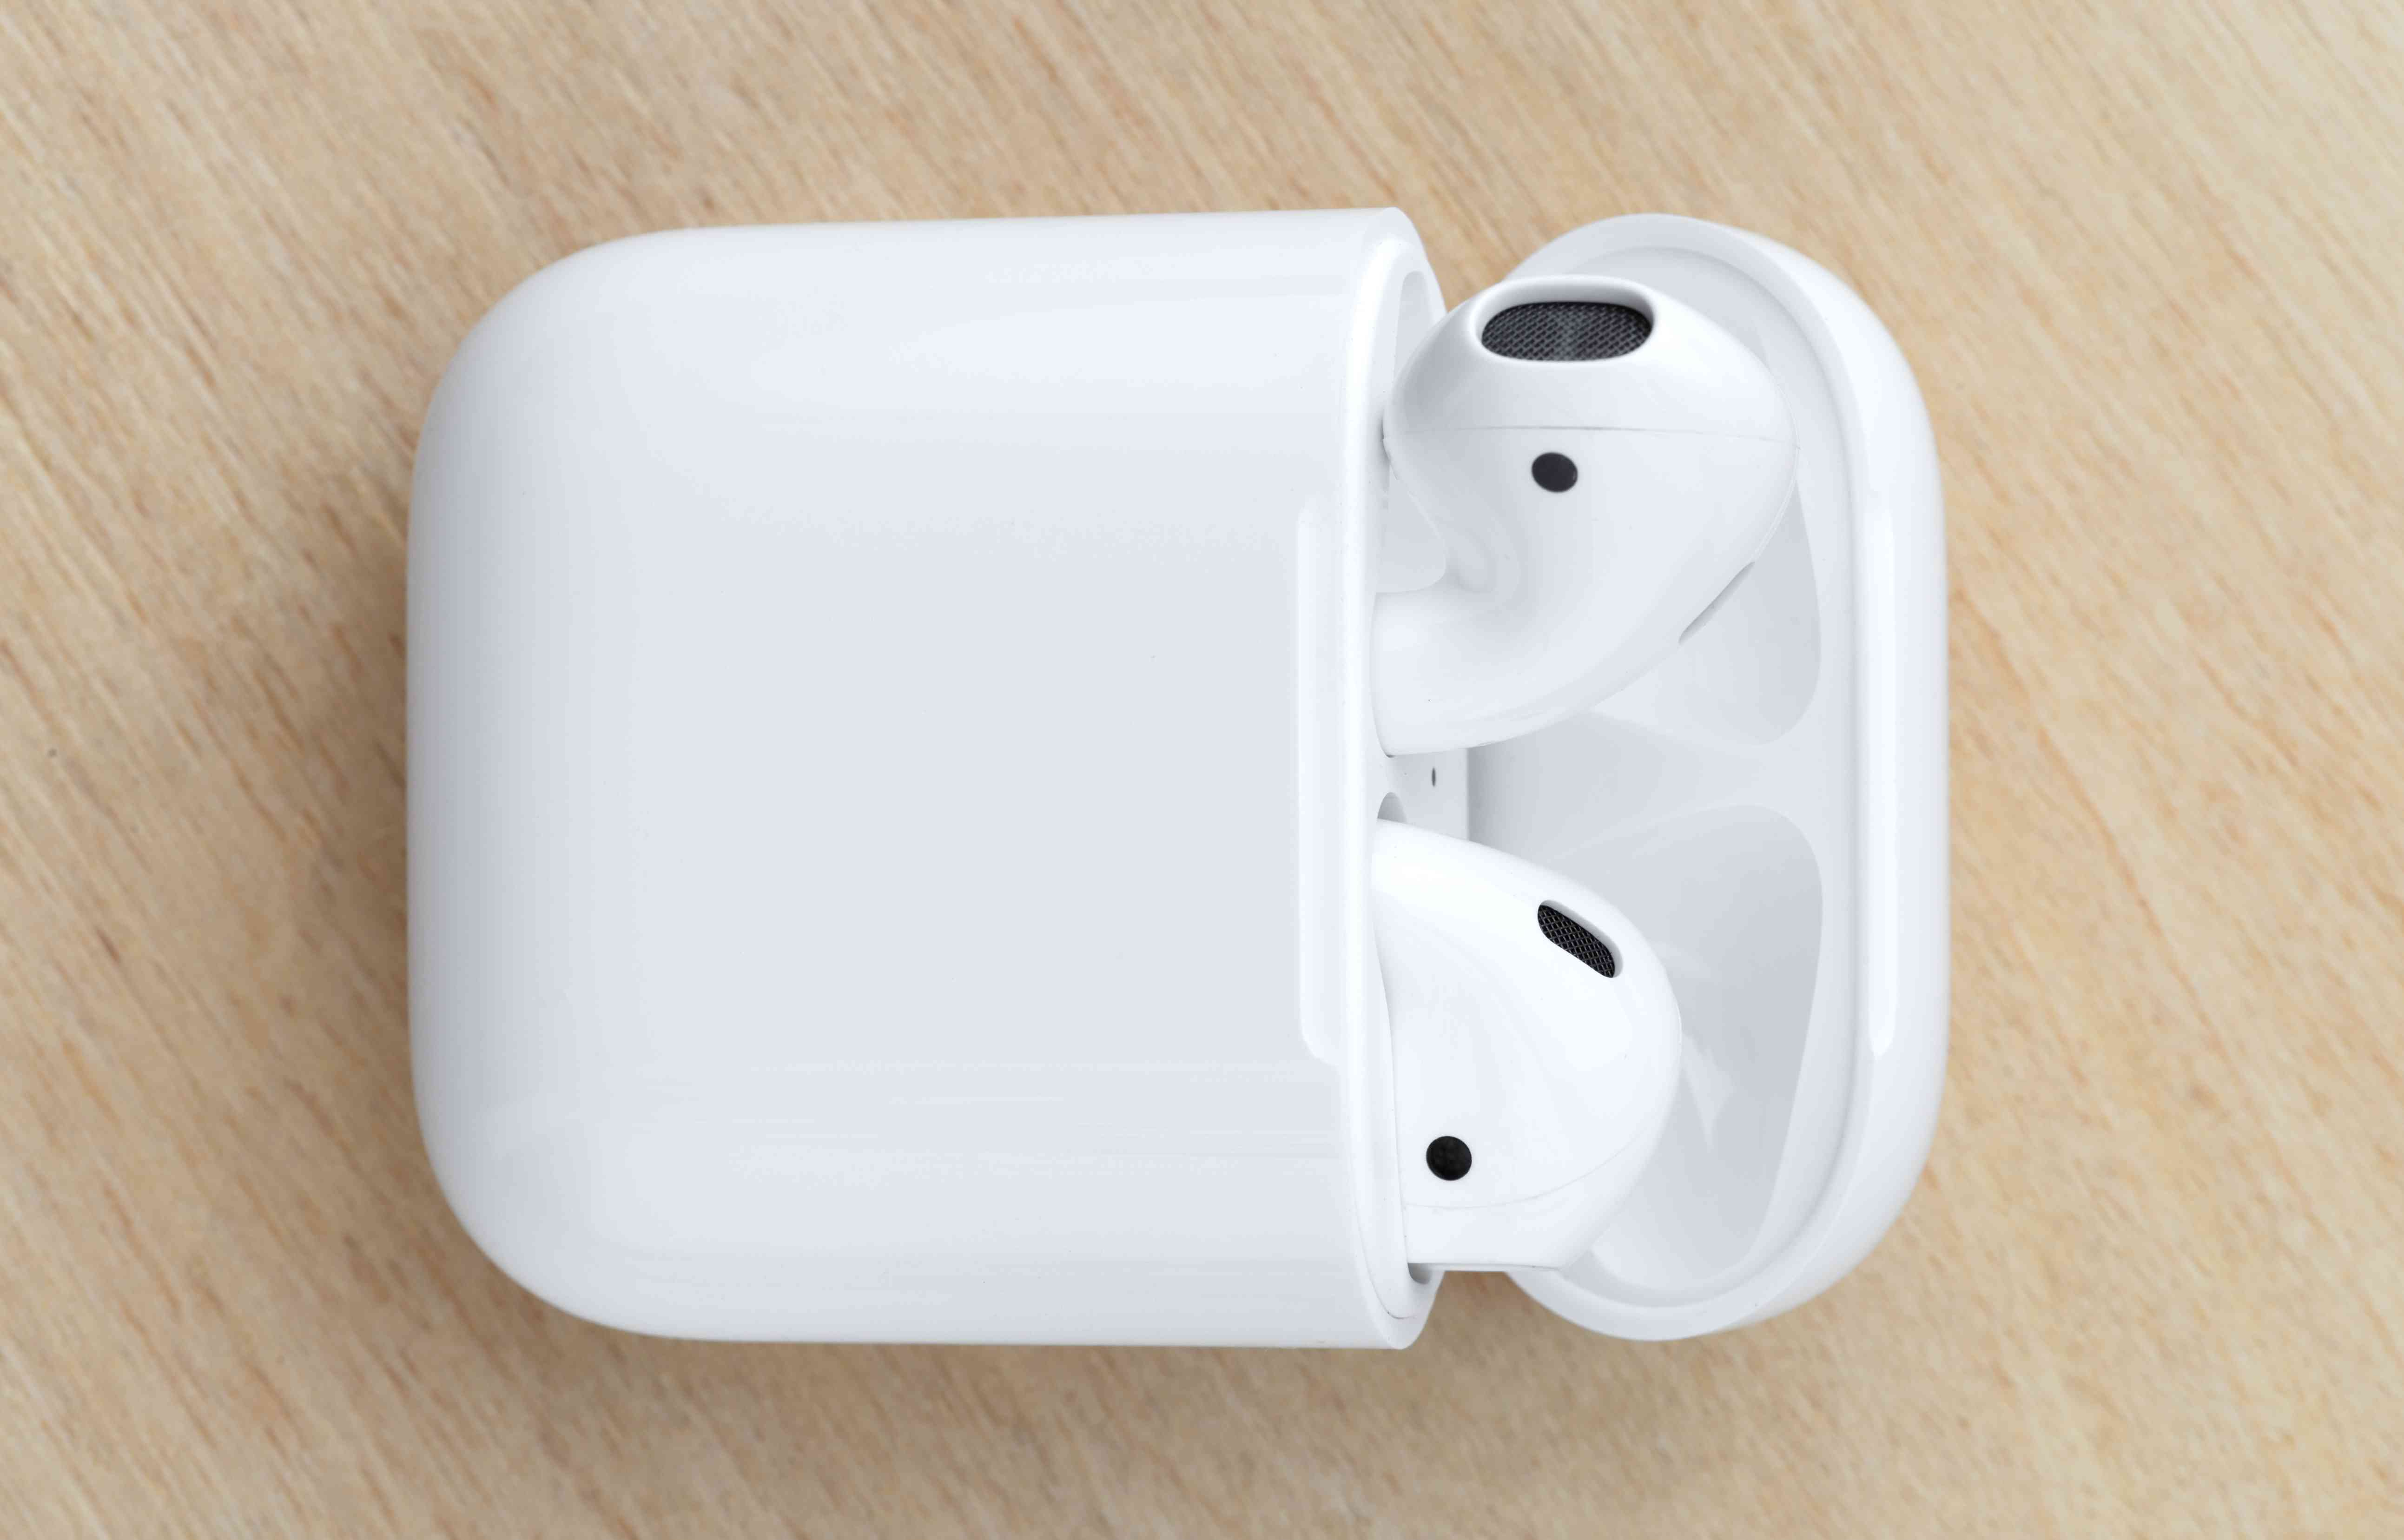 Place your Apple AirPods back in their charging case and close the lid, then wait a few seconds.